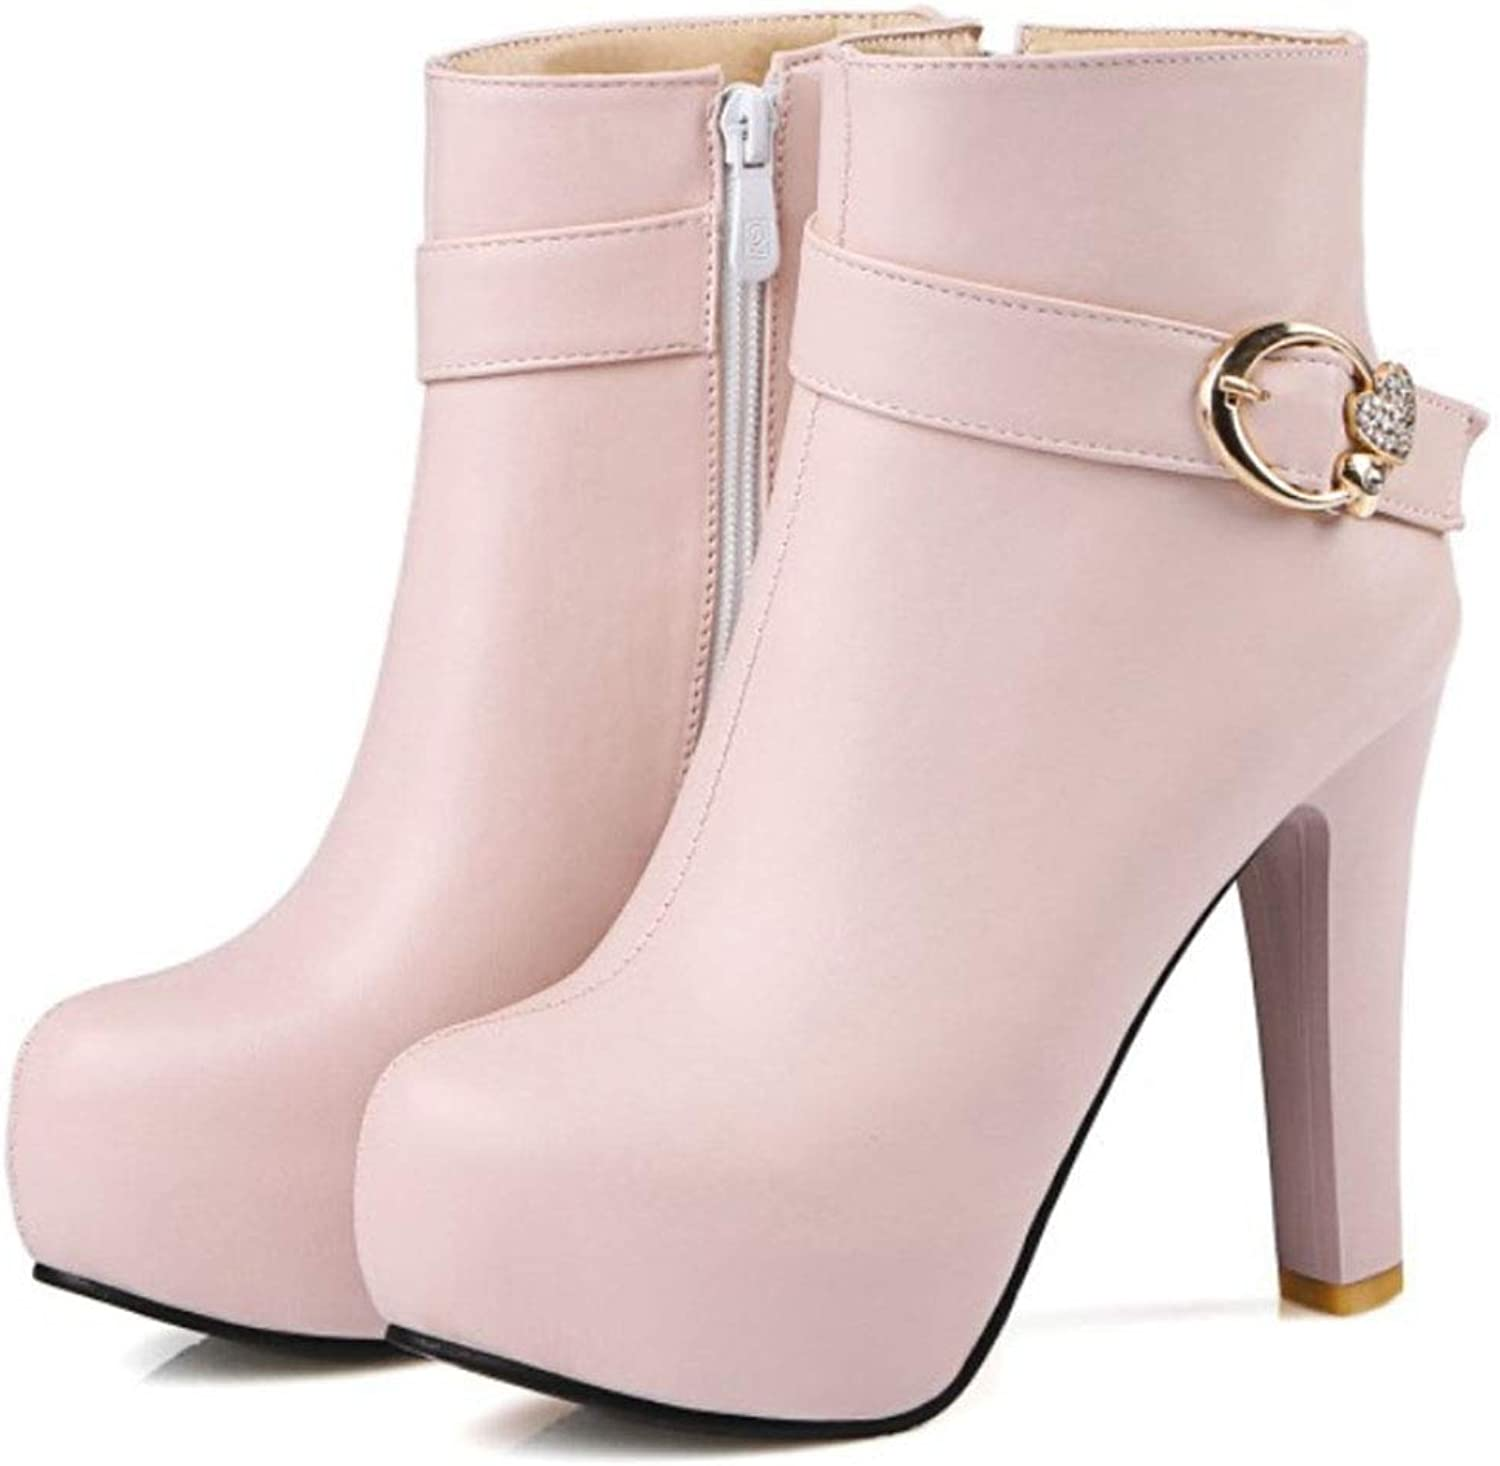 Women's Ankle Boots Leather Crude Heel high Heel Round Head Martin Boots Side Zipper Belt Buckle Super high Heel Waterproof Platform Fashion Boots Autumn and Winter